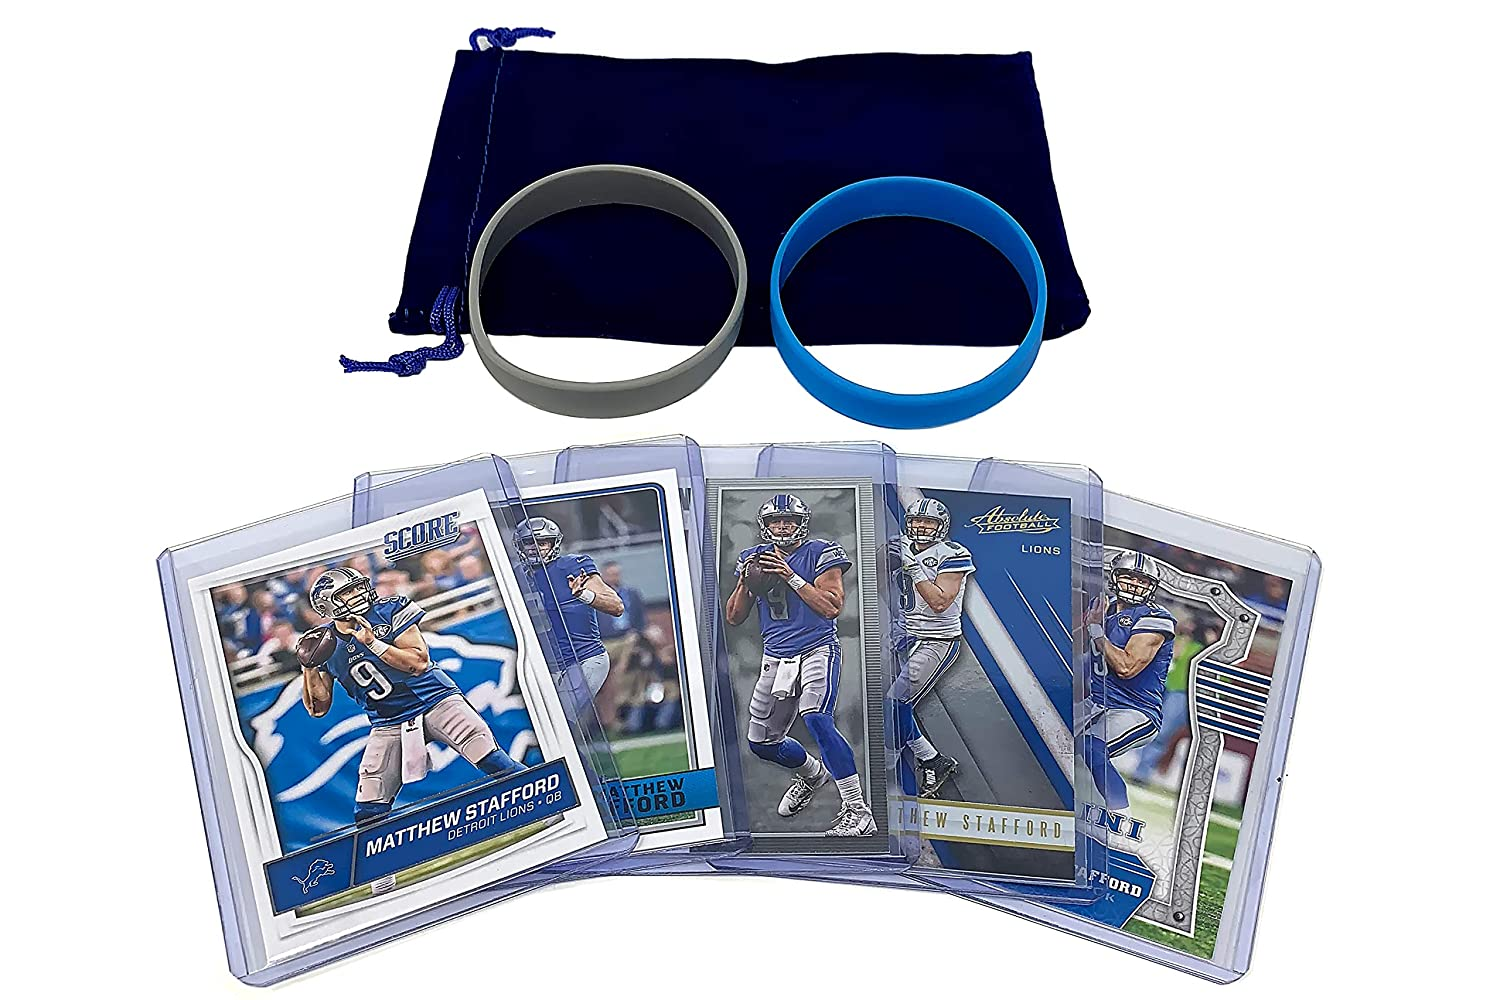 Matthew Stafford Football Cards (5) Assorted Bundle - Detroit Lions Trading Card Gift Set Panini Bowman Topps